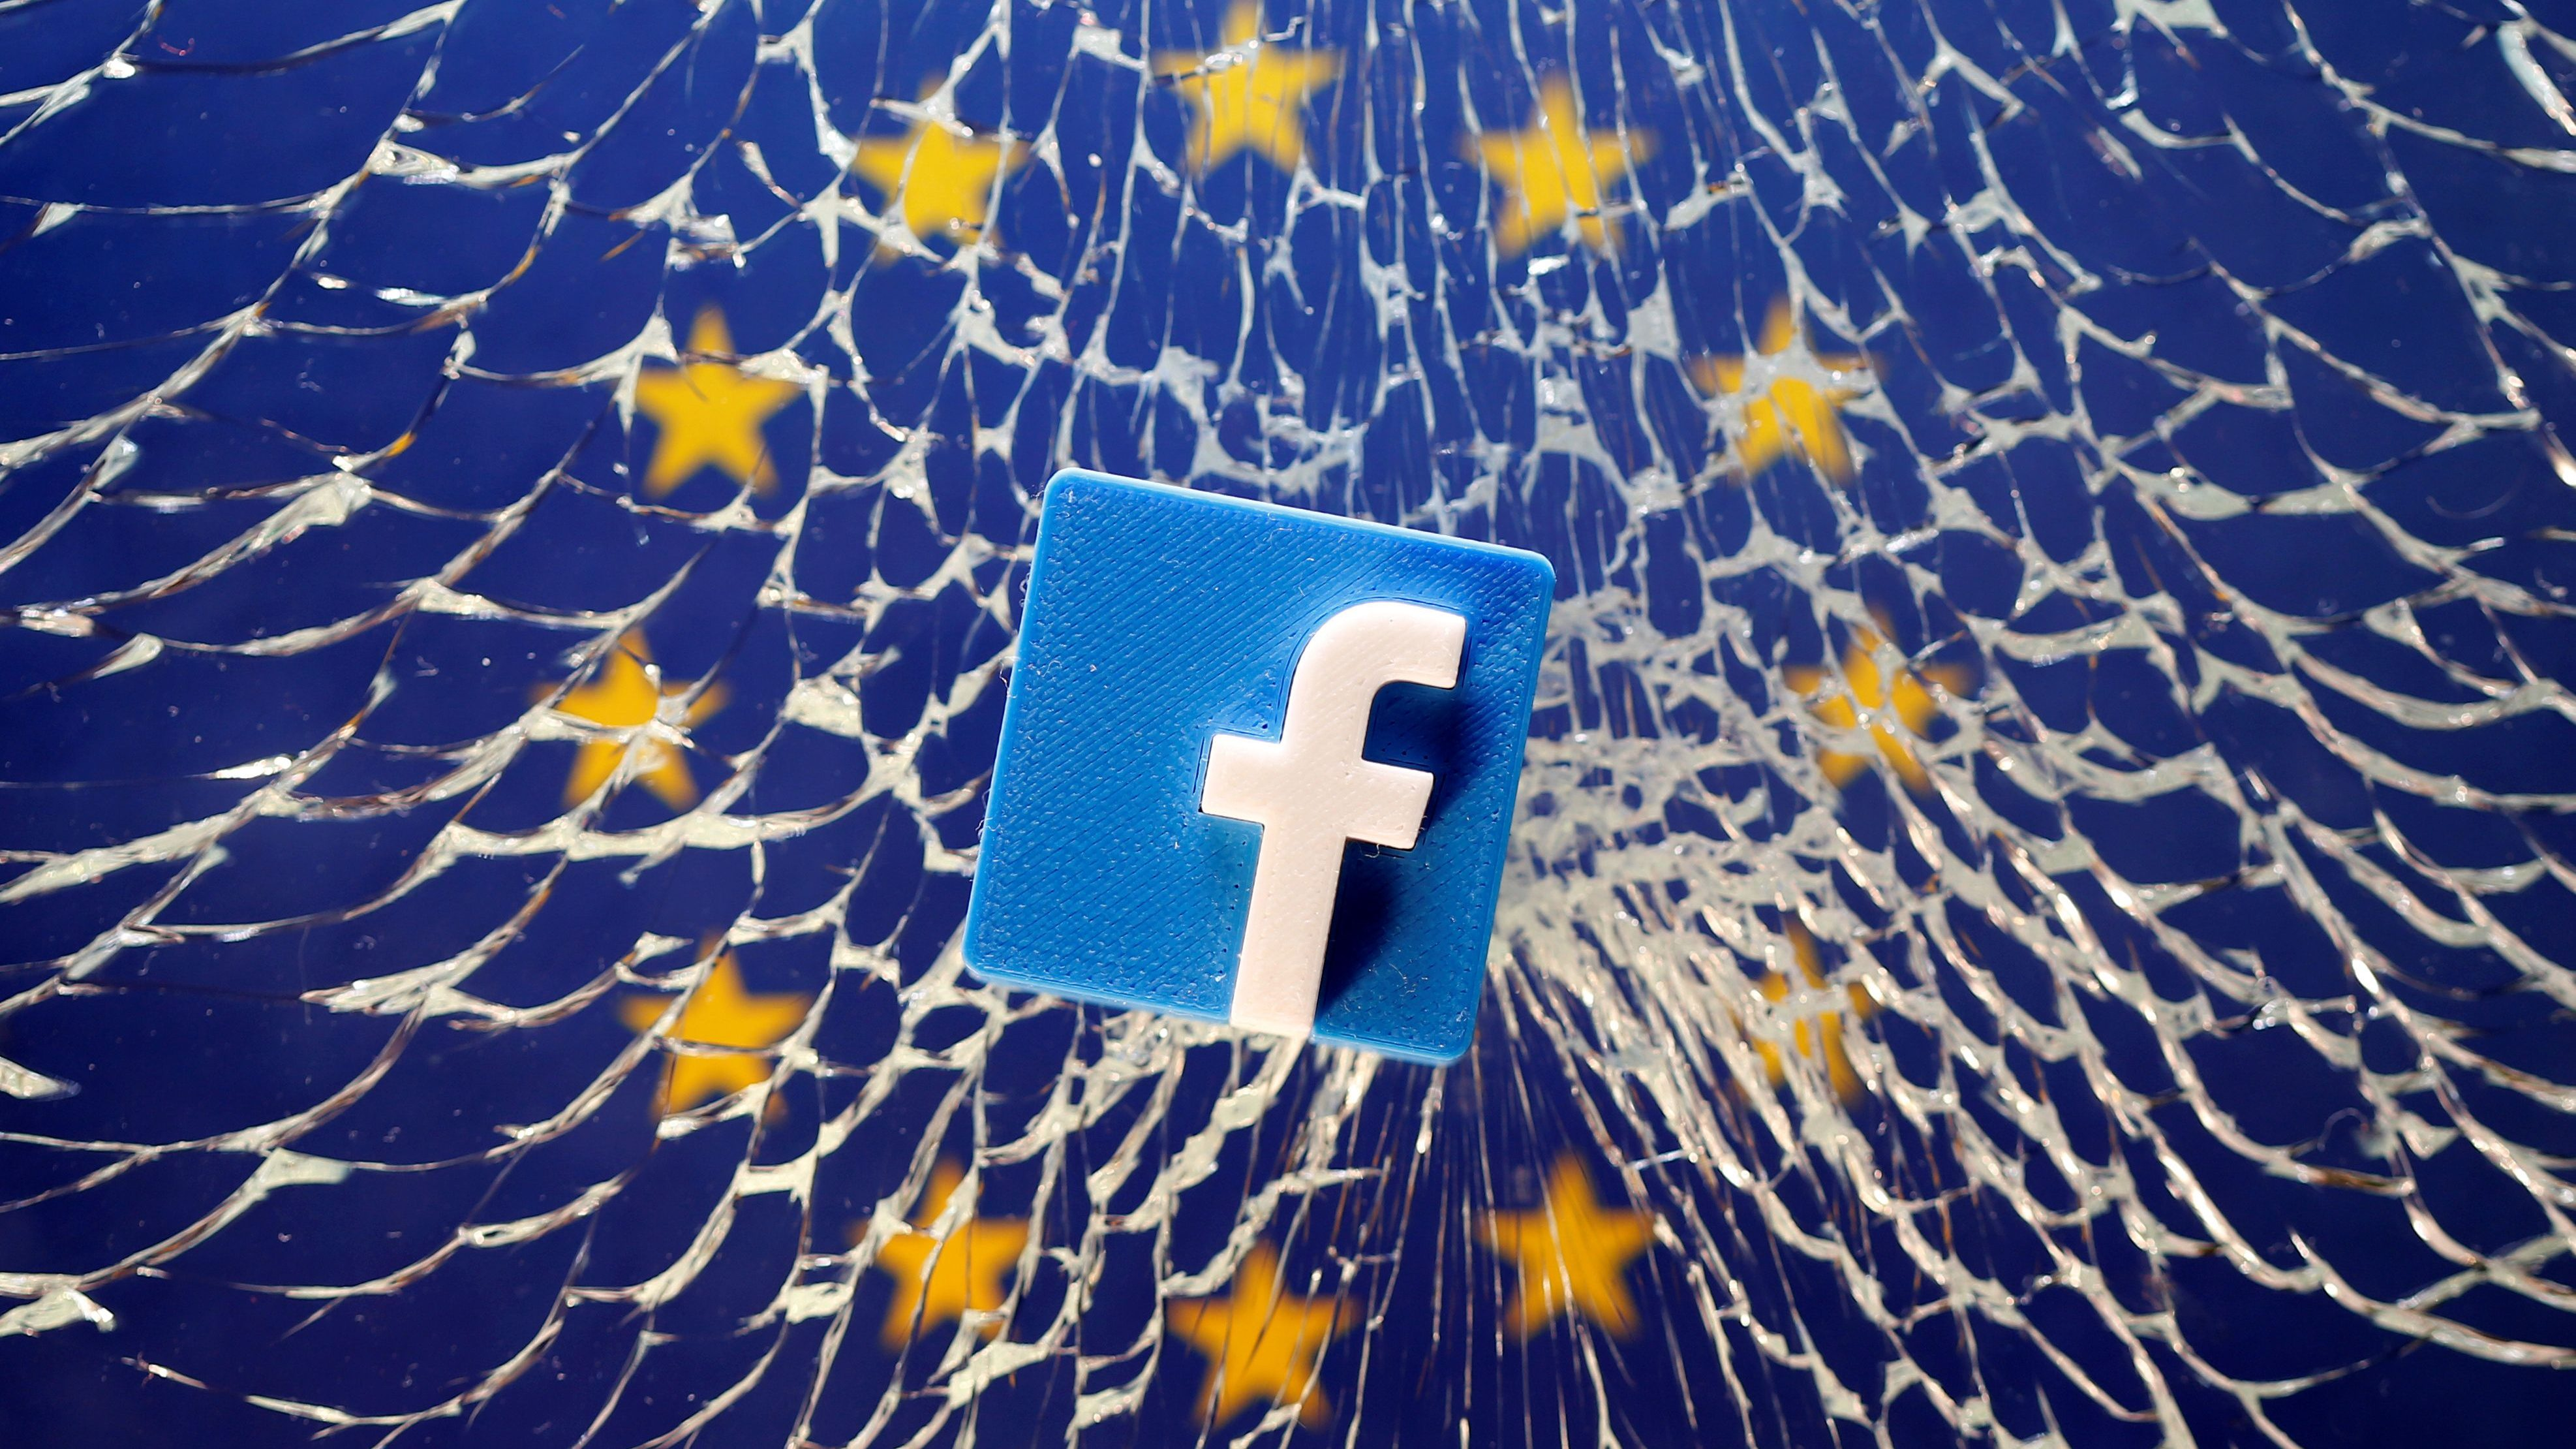 A 3D printed Facebook logo is placed on broken glass above a printed EU flag in this illustration